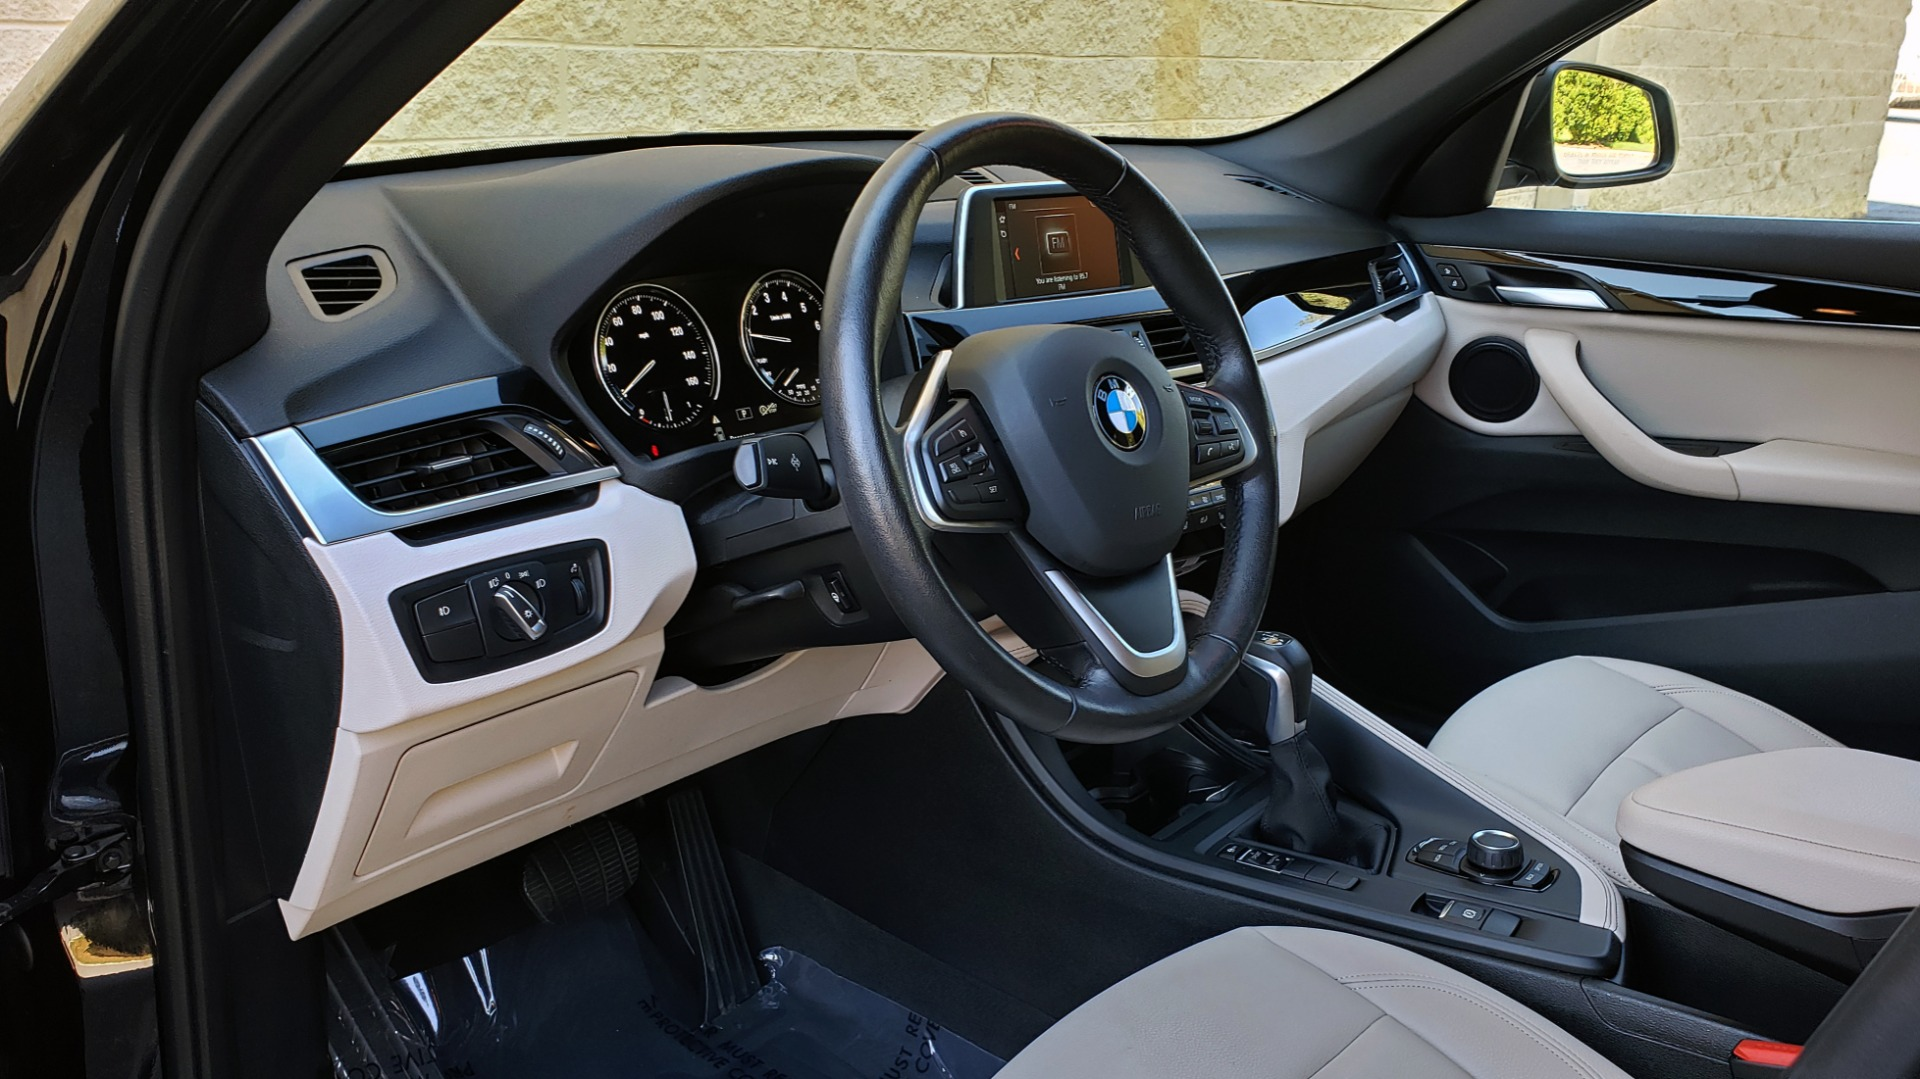 Used 2018 BMW X1 SDRIVE28I / HEATED SEATS / 4-CYL / 8-SPD AUTO / REARVIEW for sale Sold at Formula Imports in Charlotte NC 28227 38